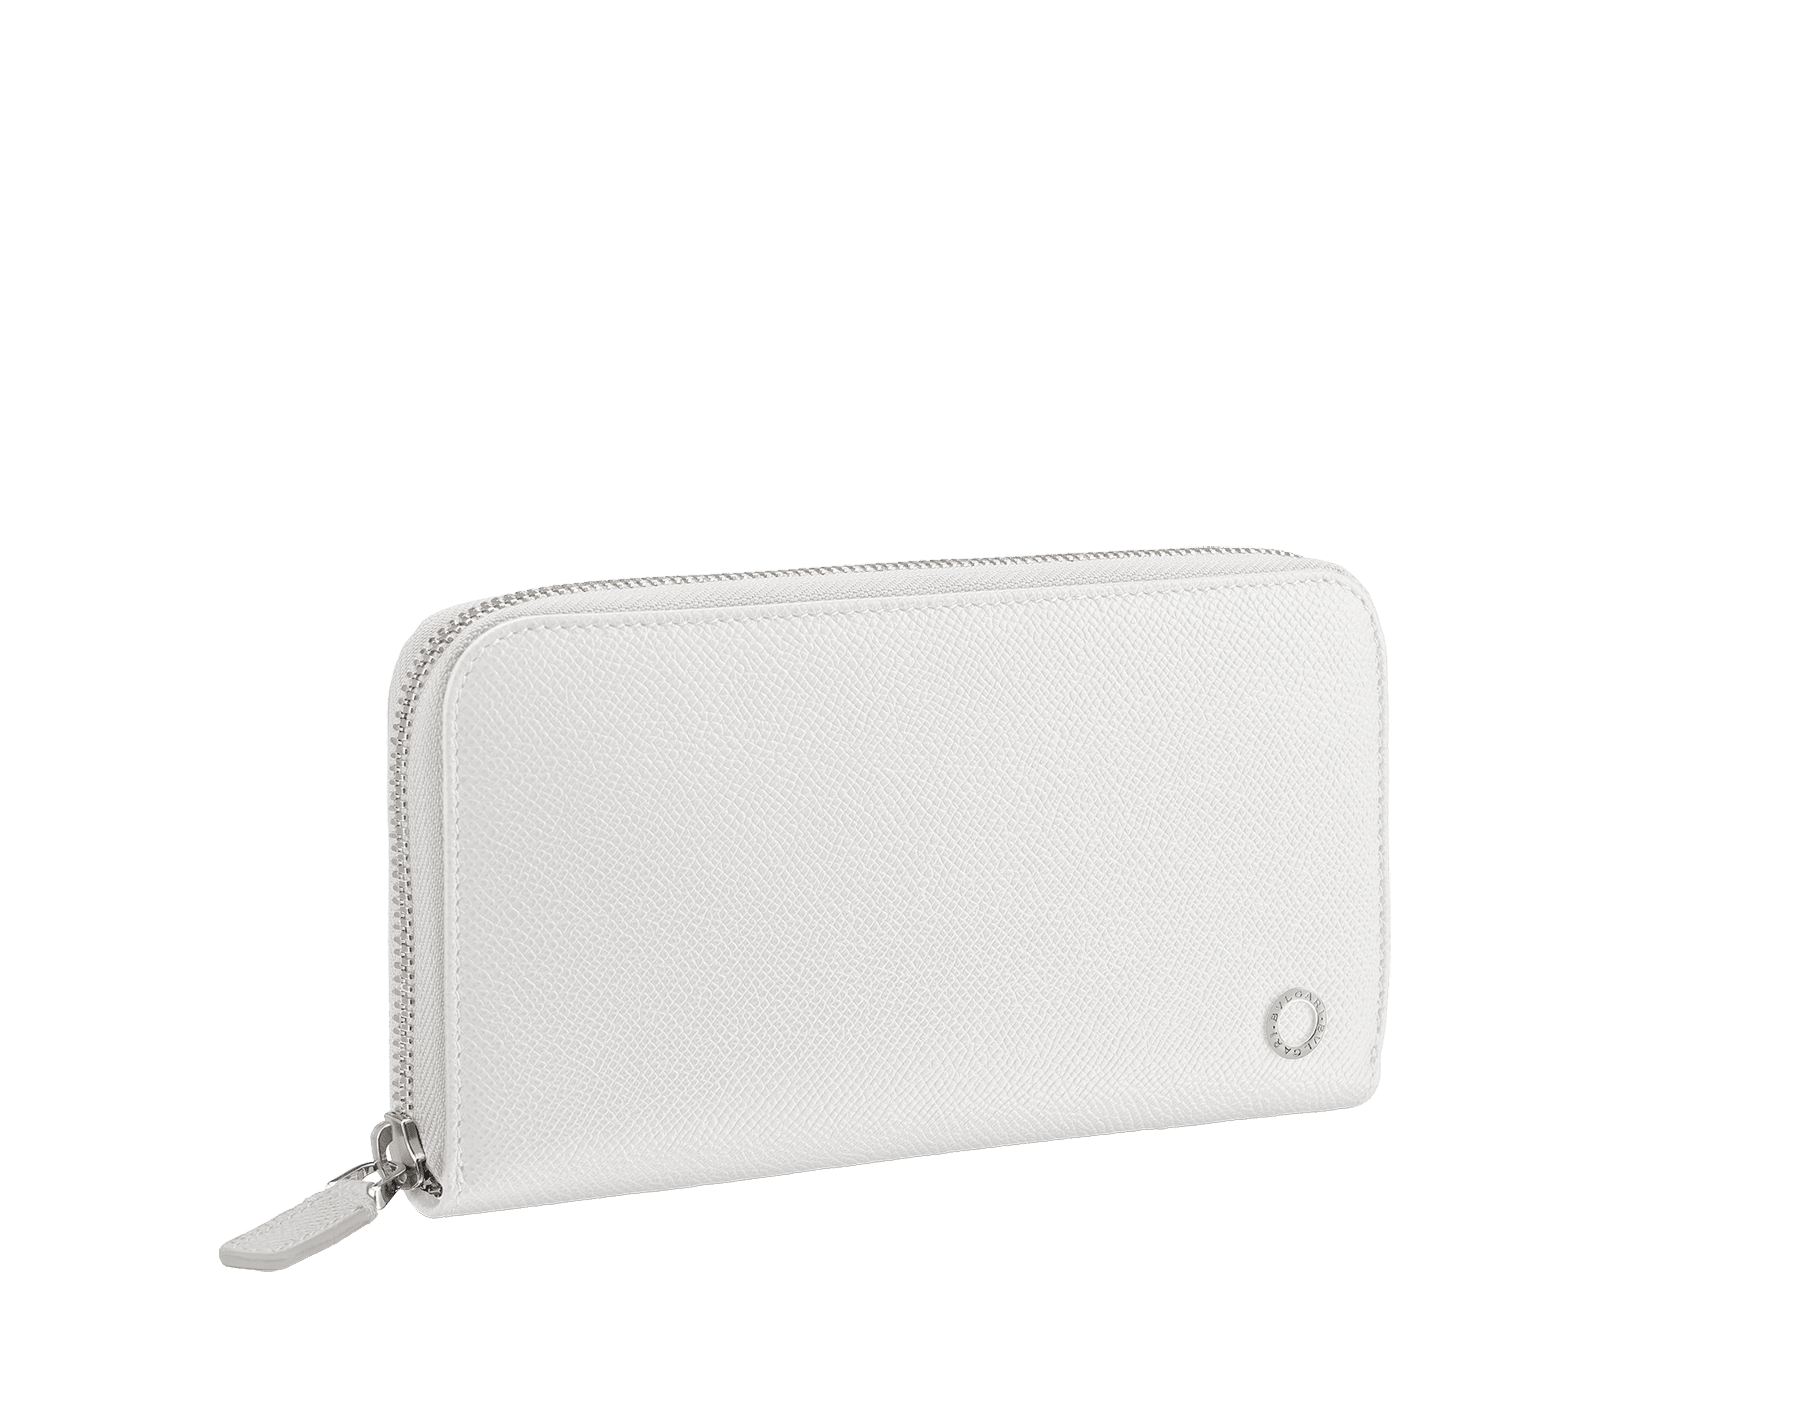 BVLGARI BVLGARI man zipped wallet in white agate and pluto stone grain calf leather and iron stone nappa lining. Iconic logo décor in palladium plated brass. 288255 image 1